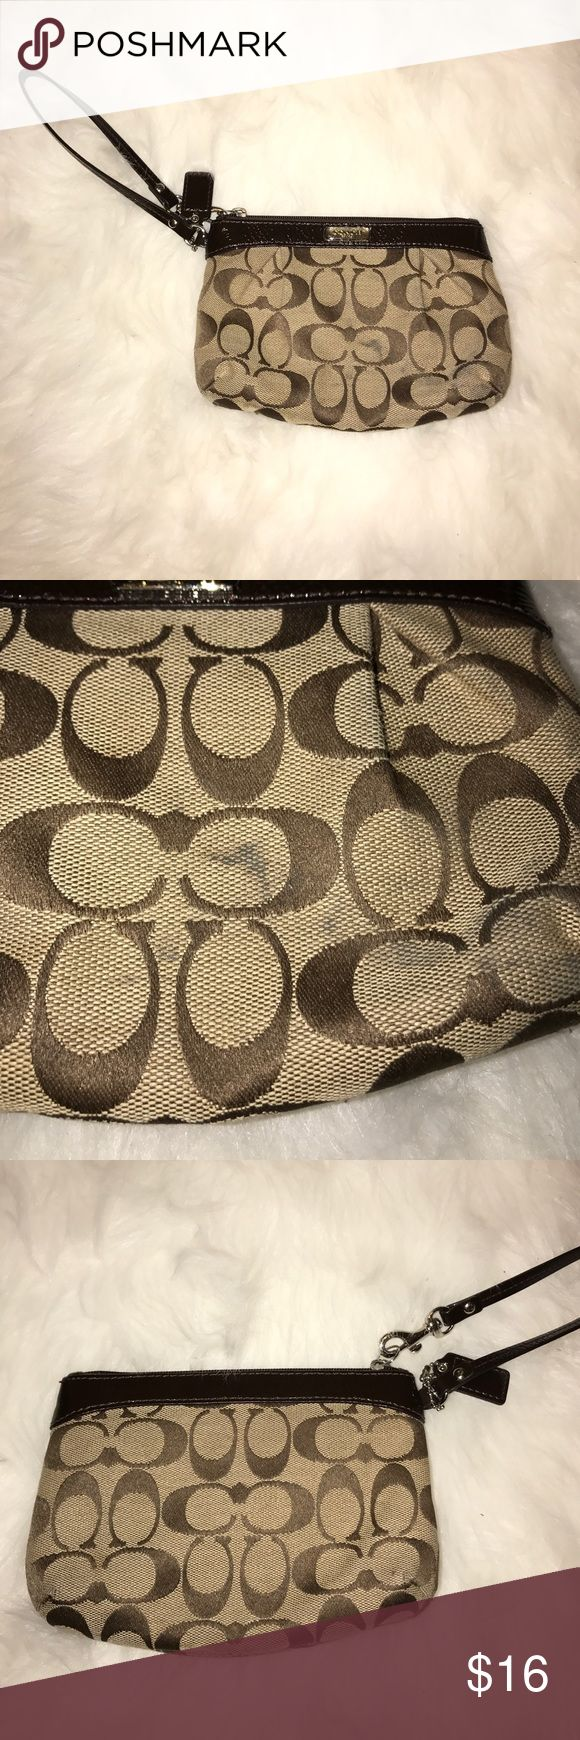 COACH CLUTCH!!!! It is definitely used, but great size and perfect to grab and go with. The stains are reflected in the front picture and there's small stains inside. They could easily be cleaned and it would be back to new, I just have so many and haven't taken the time to do so. (sorry mom) Coach Bags